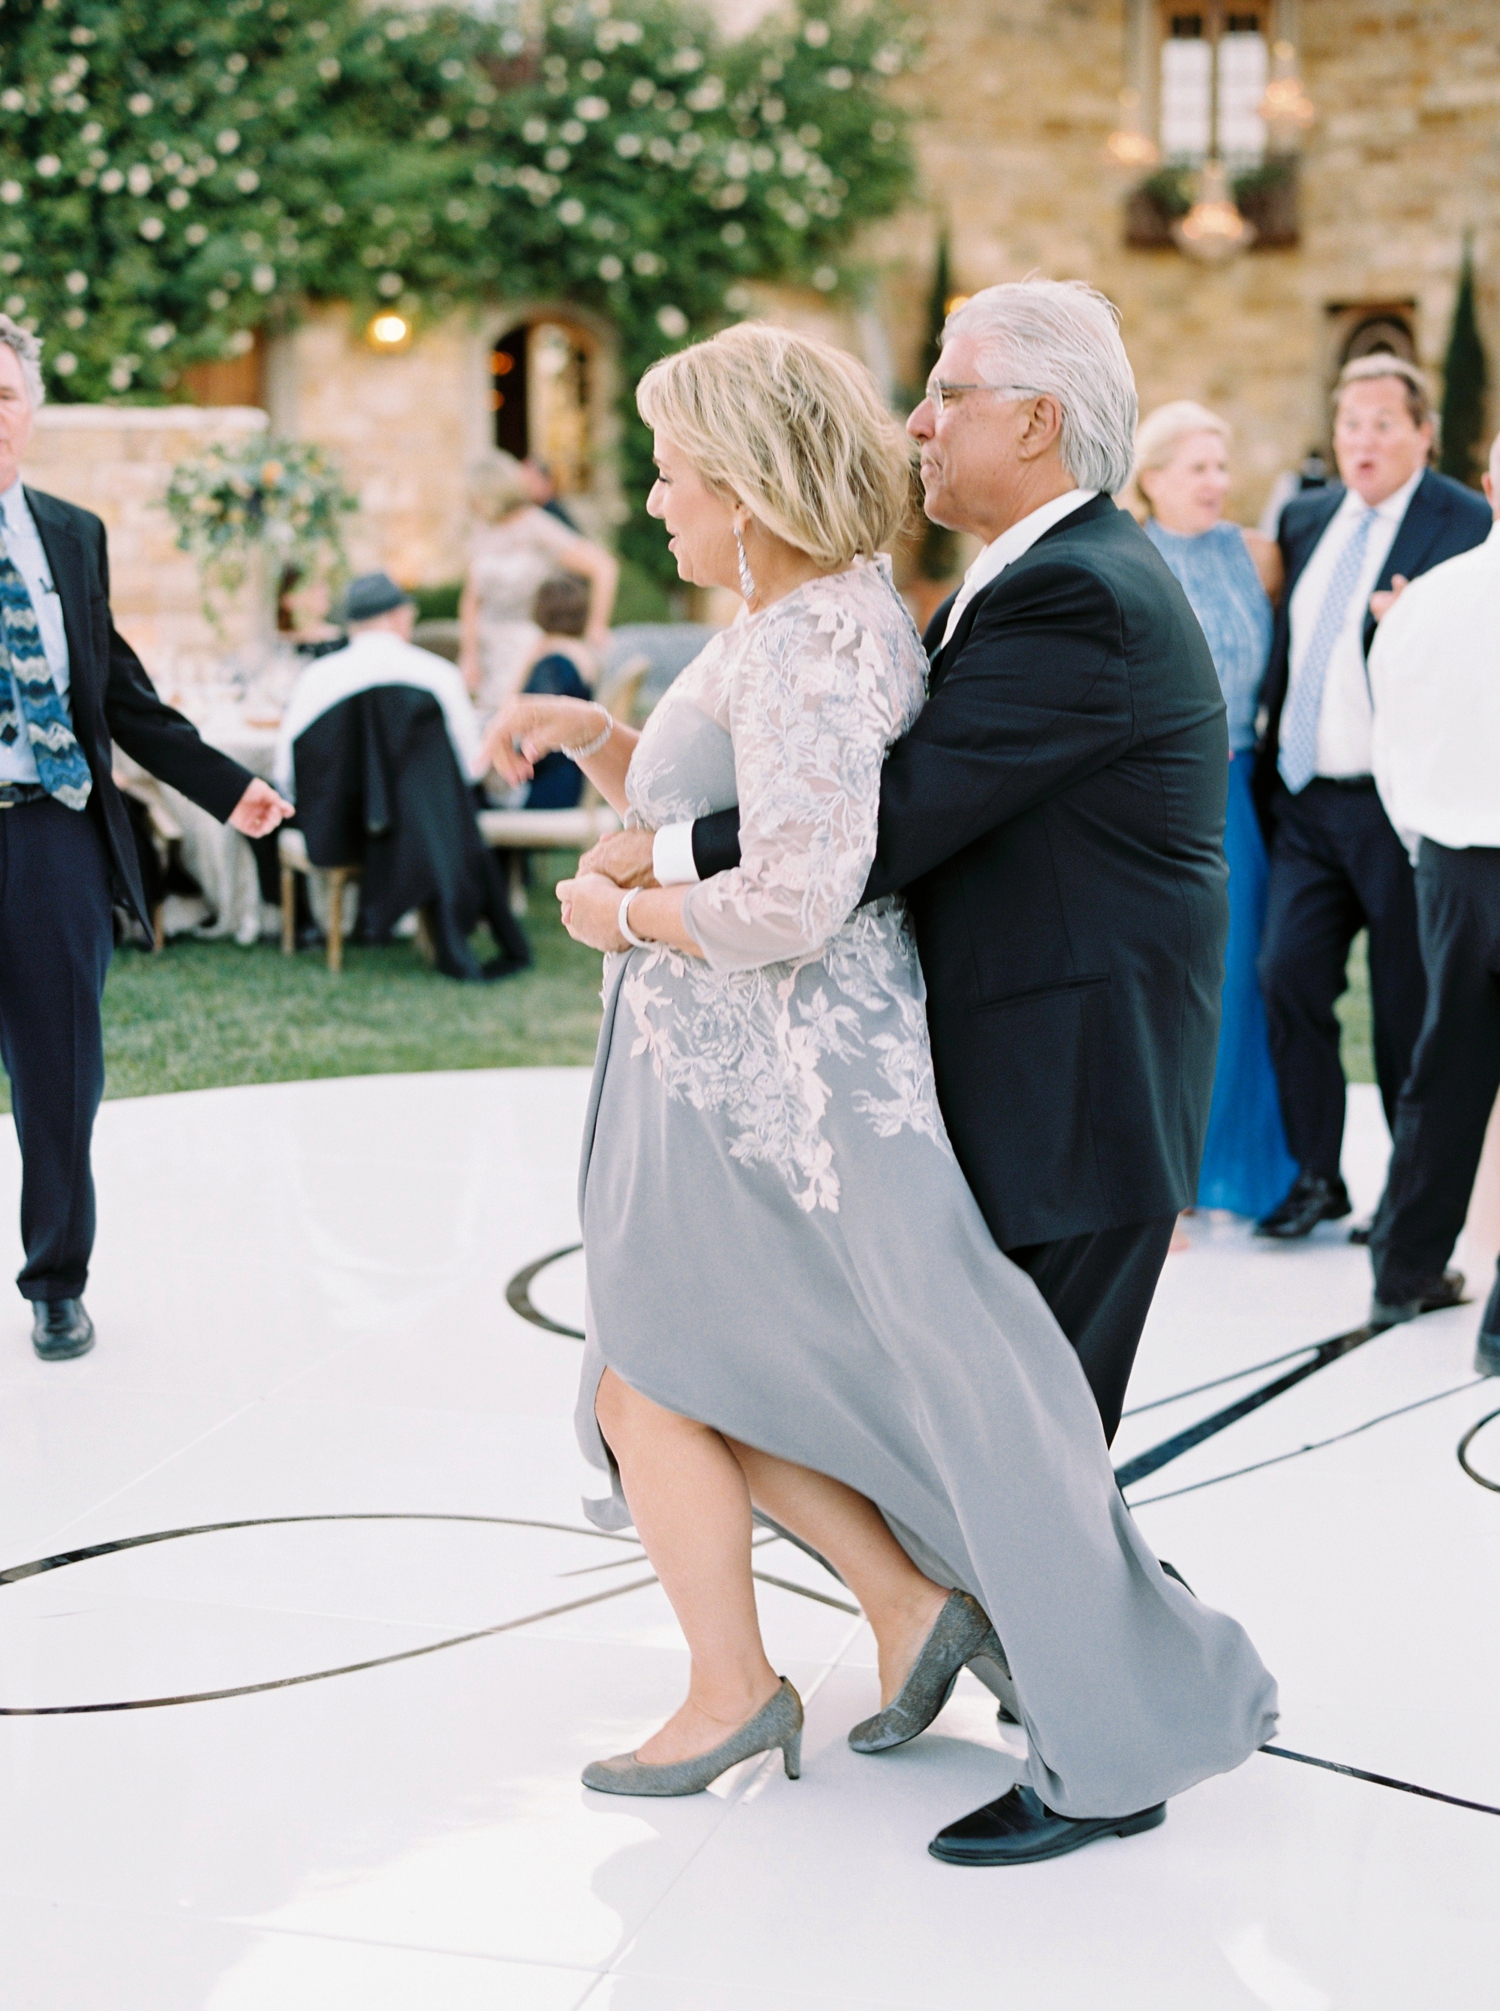 Sunstone Winery and Villa | California Wedding Photographers | Santa Barbara Wedding Photography | Santa Ynez Wedding | Justine Milton Photographer | Fine Art Film | Wedding Reception Dancing